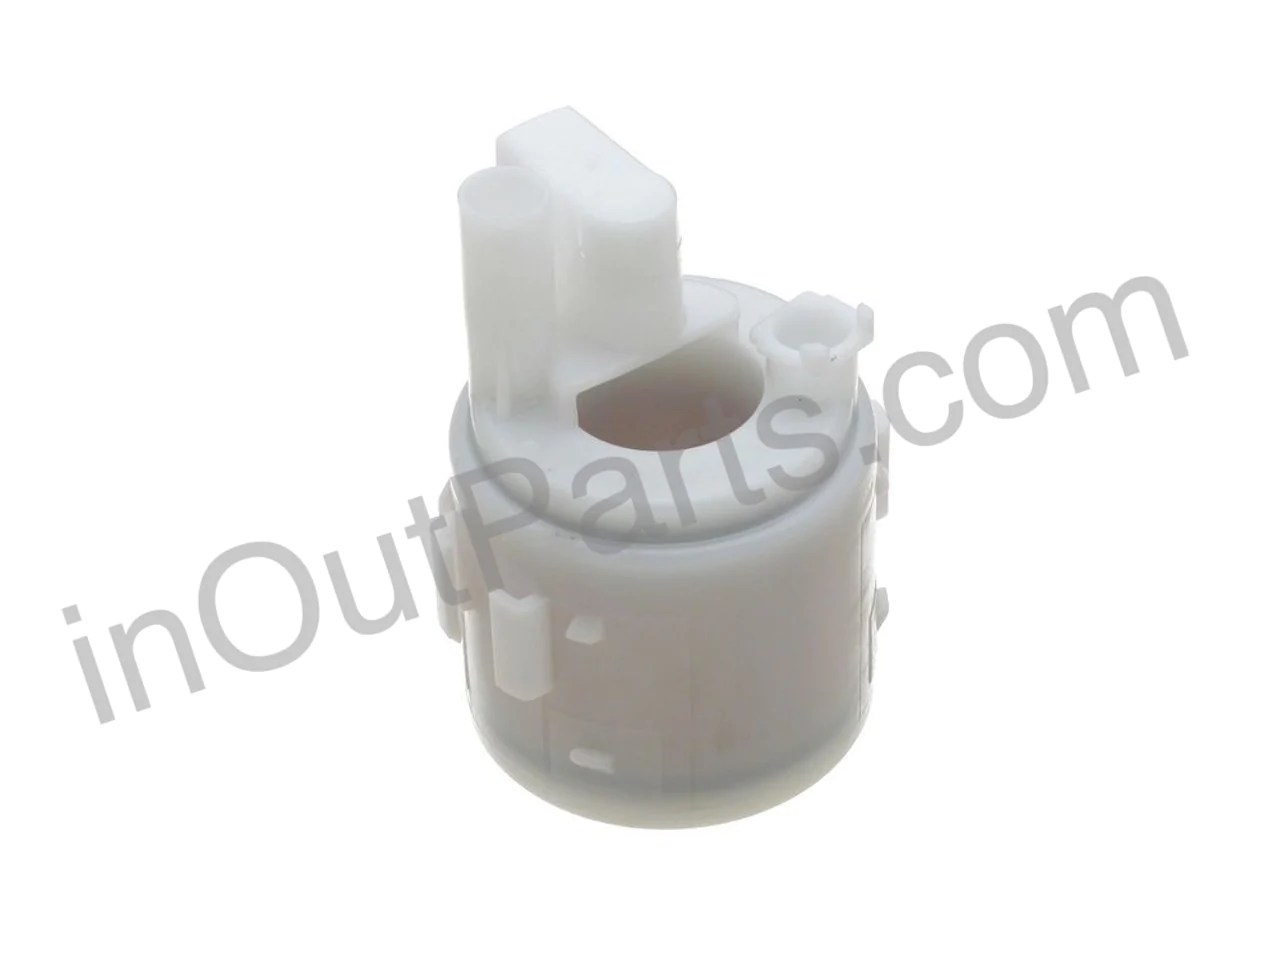 hight resolution of fuel filter fits nissan x trail 2000 2001 2002 2003 2004 2005 2006 2 inout parts